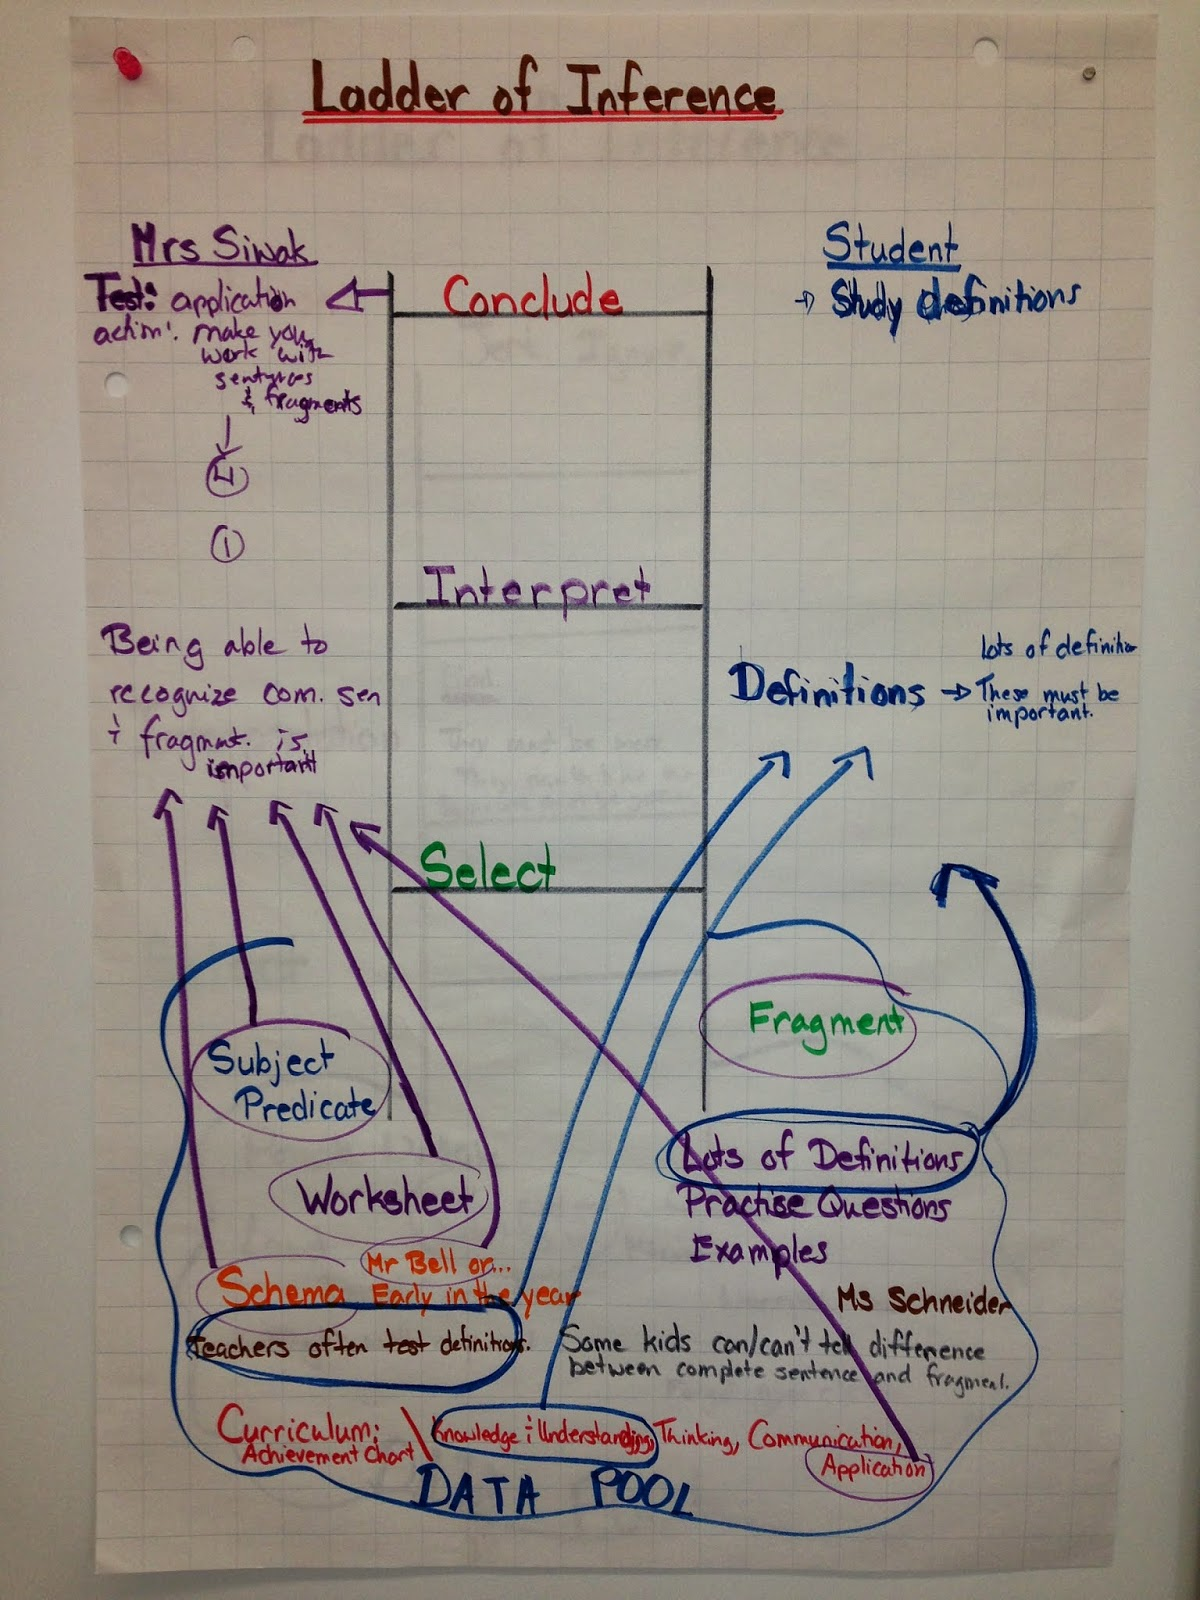 Using The Ladder Of Inference To Improve Student Teacher Communication